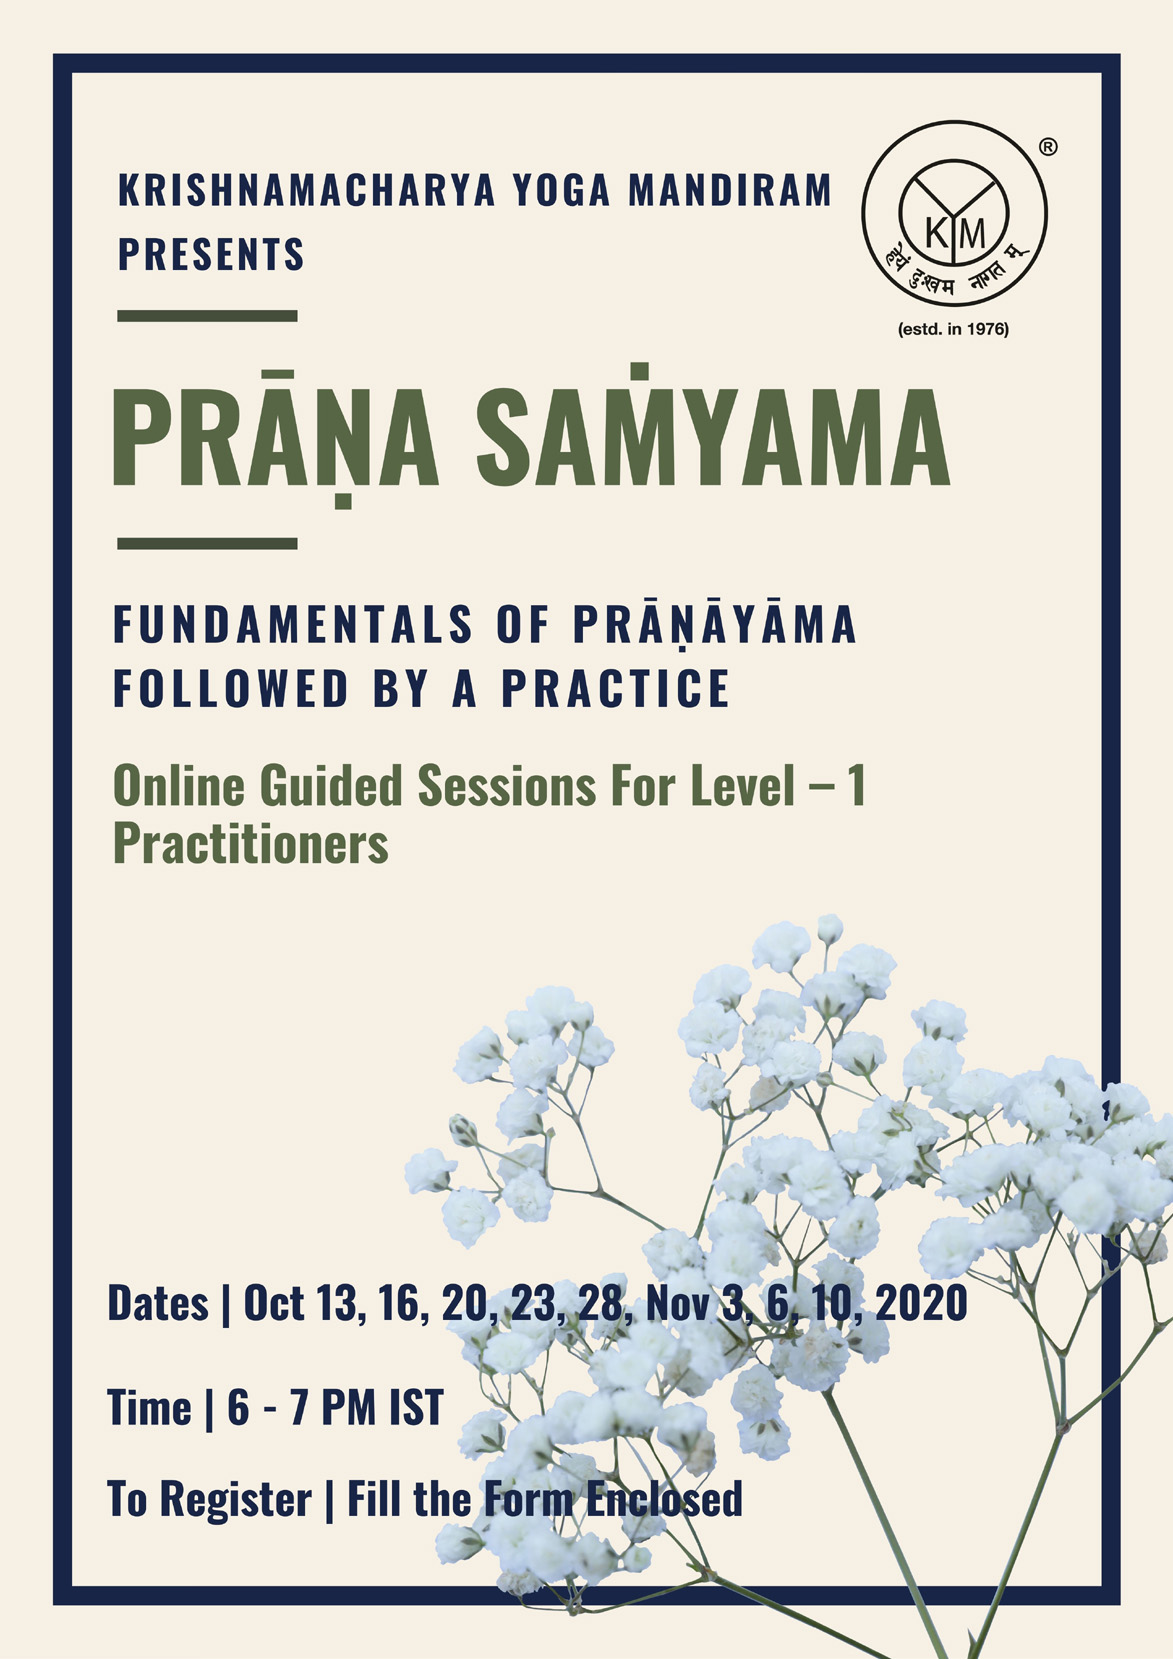 Fundamentals of Prāṇāyāma Followed by a Practice (Prāṇa Saṁyama)